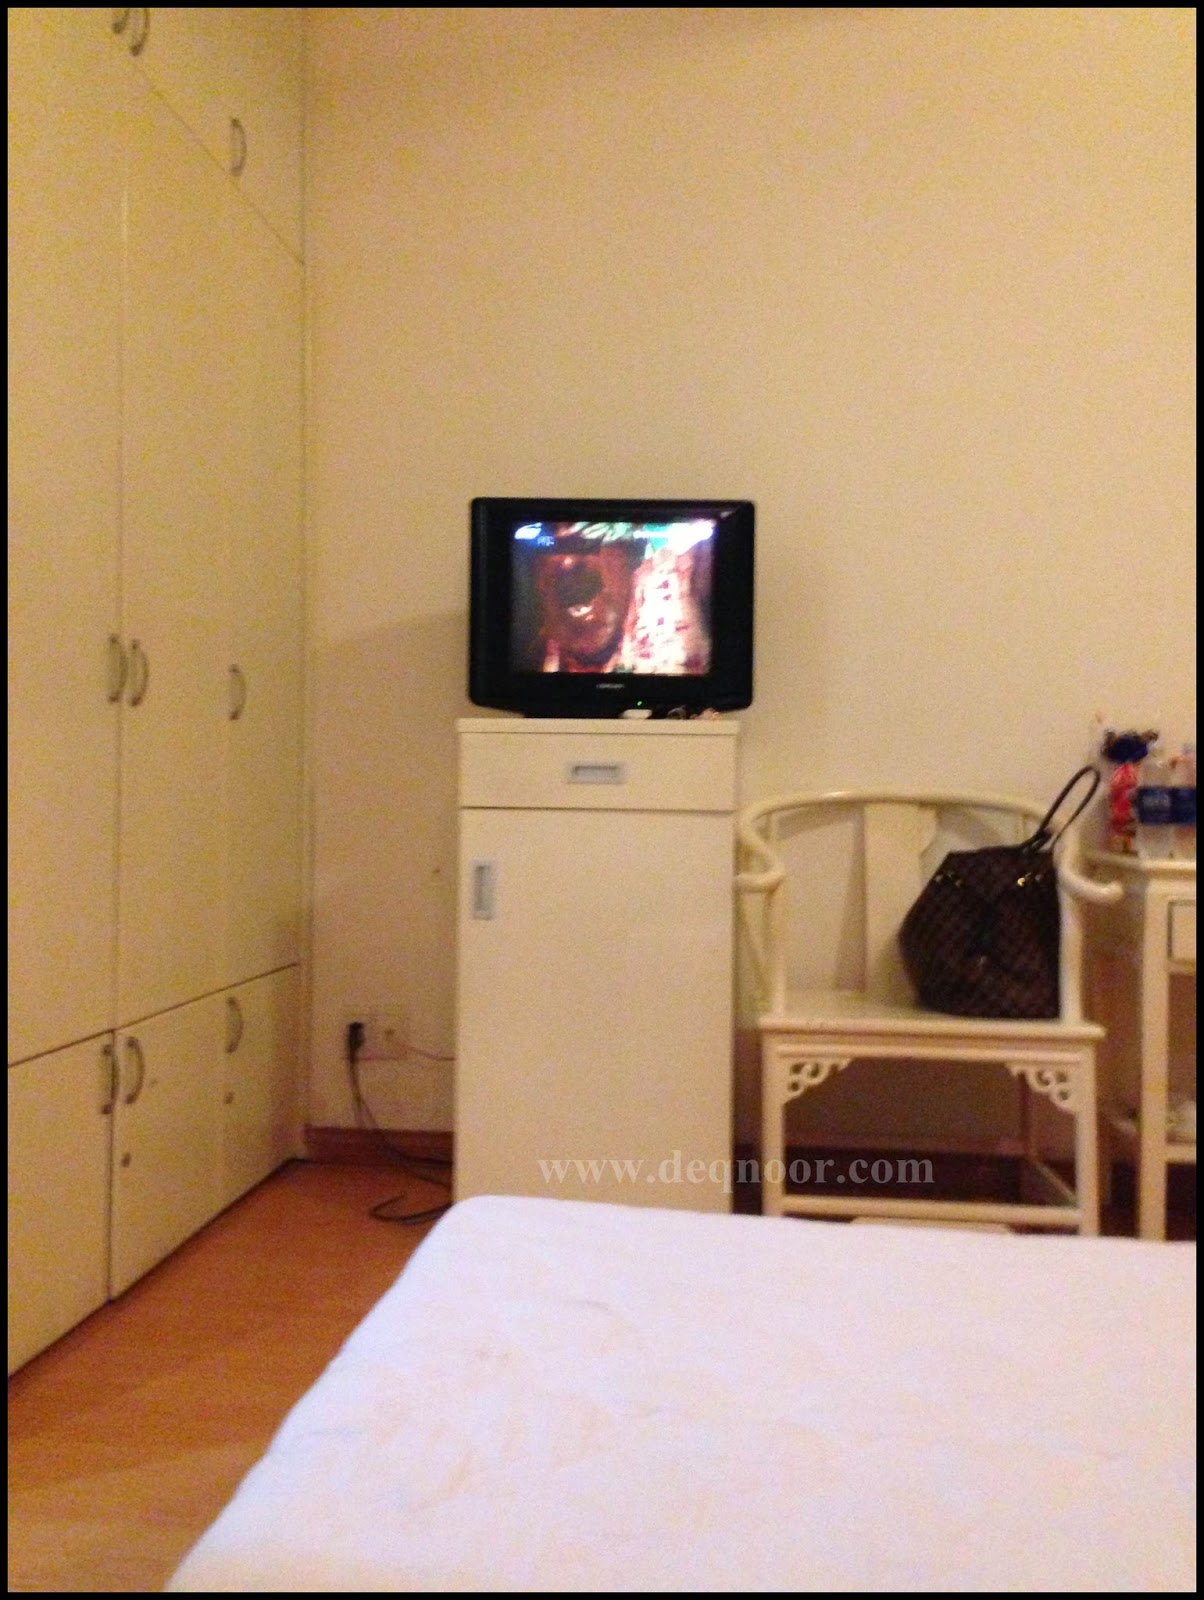 Saigon Pink 2 Hotel - TV, pantry and refrigerator